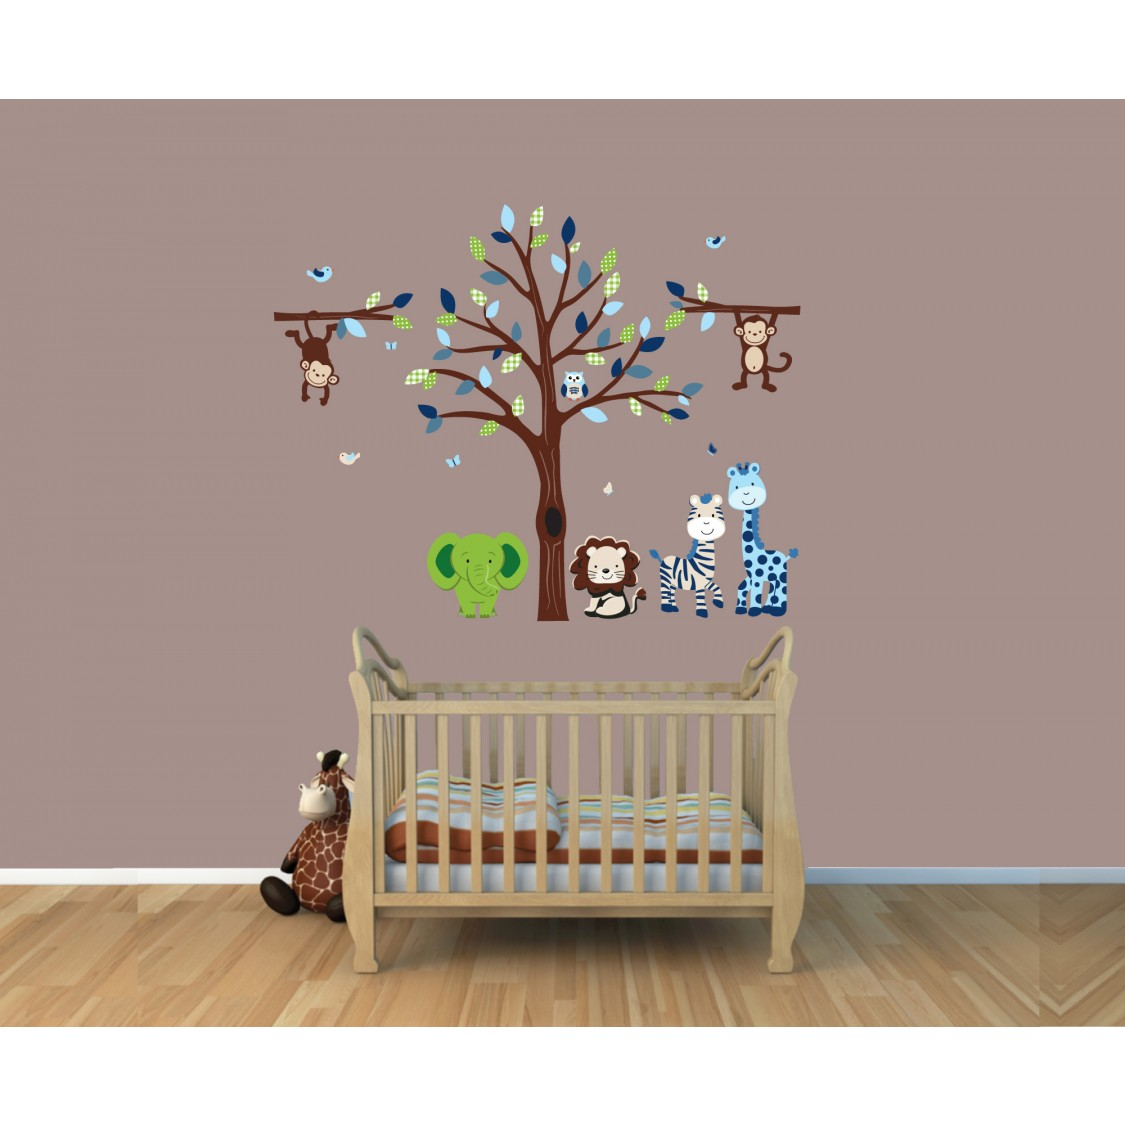 Green Safari Wall Decals With Elephant Wall Decals For Play Rooms